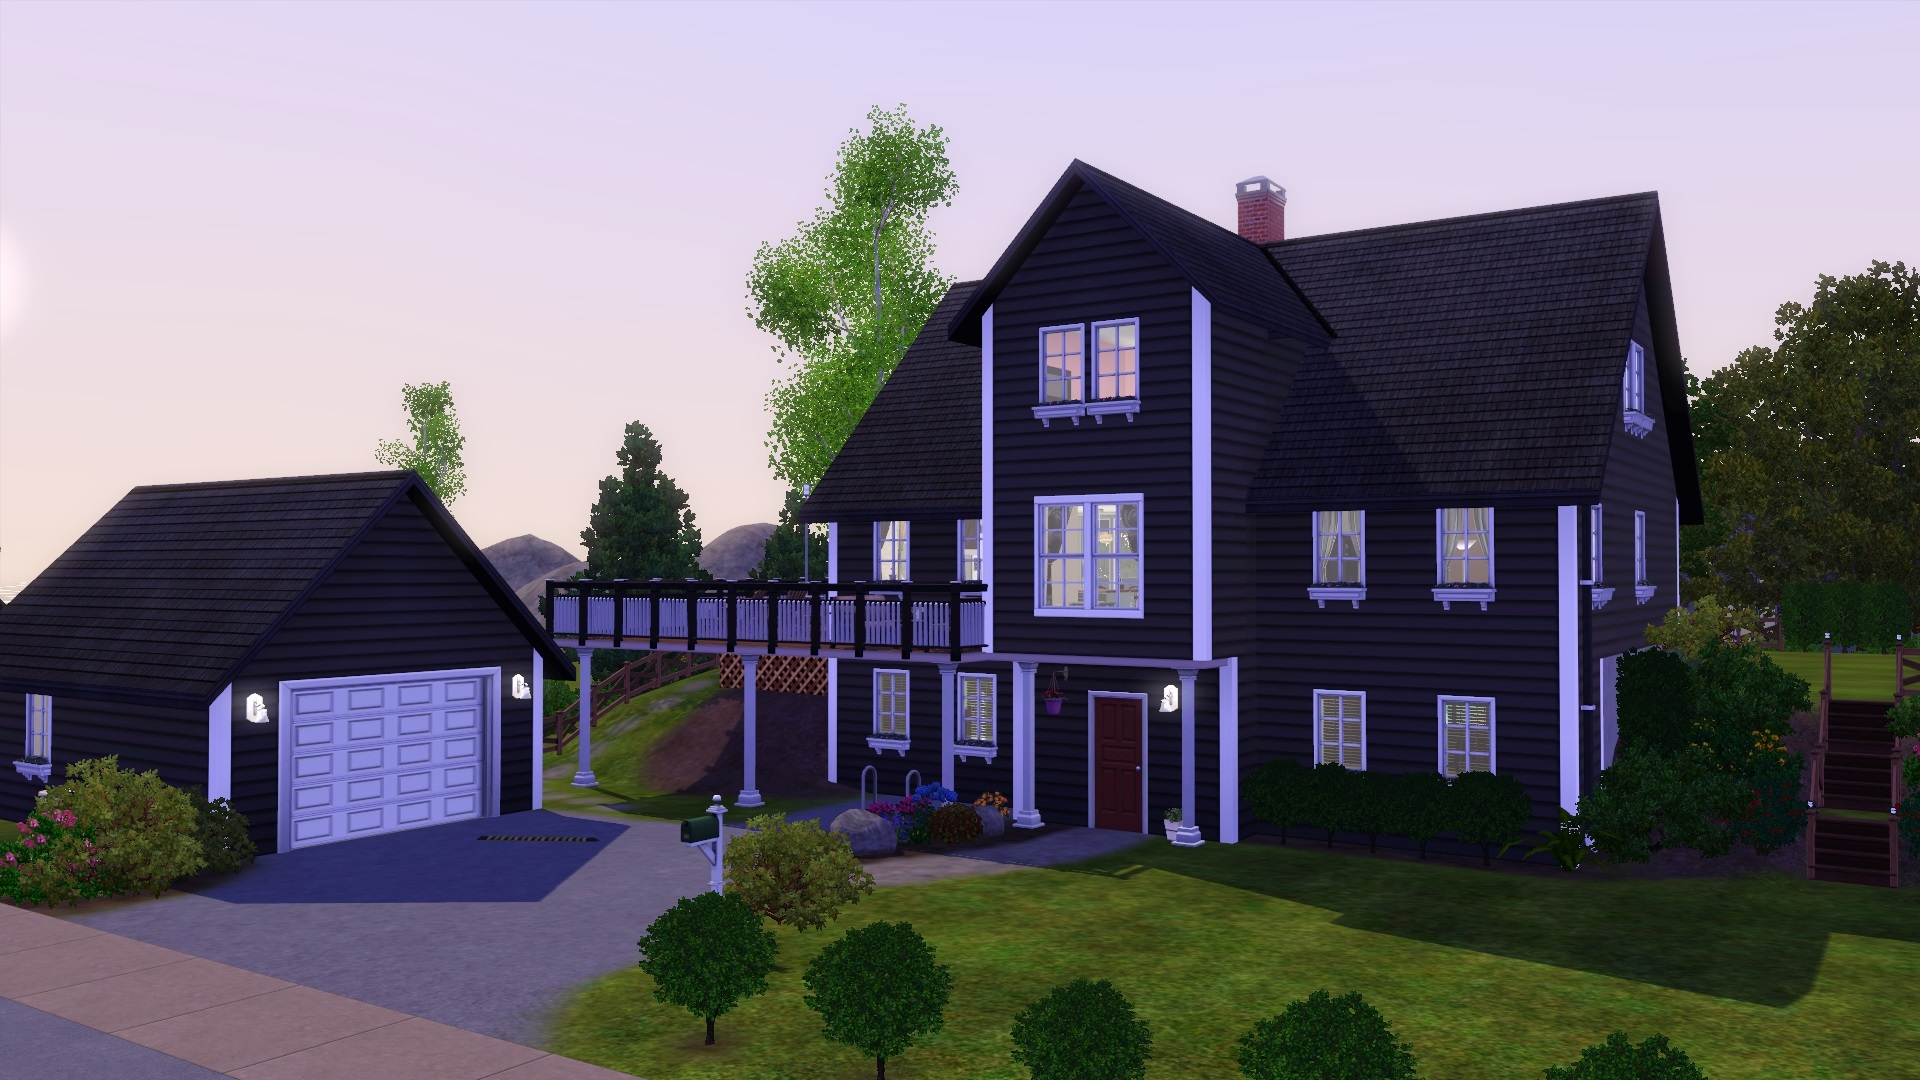 Mod The Sims  Norwegian House. Wall Arts For Living Room. Pictures Of Cottage Living Rooms. Living Room Bench Seat. Marble Living Room Furniture. Images Of Living Rooms With Fireplaces. Living Room Mats. Styles Of Living Room Chairs. Simmons Living Room Furniture